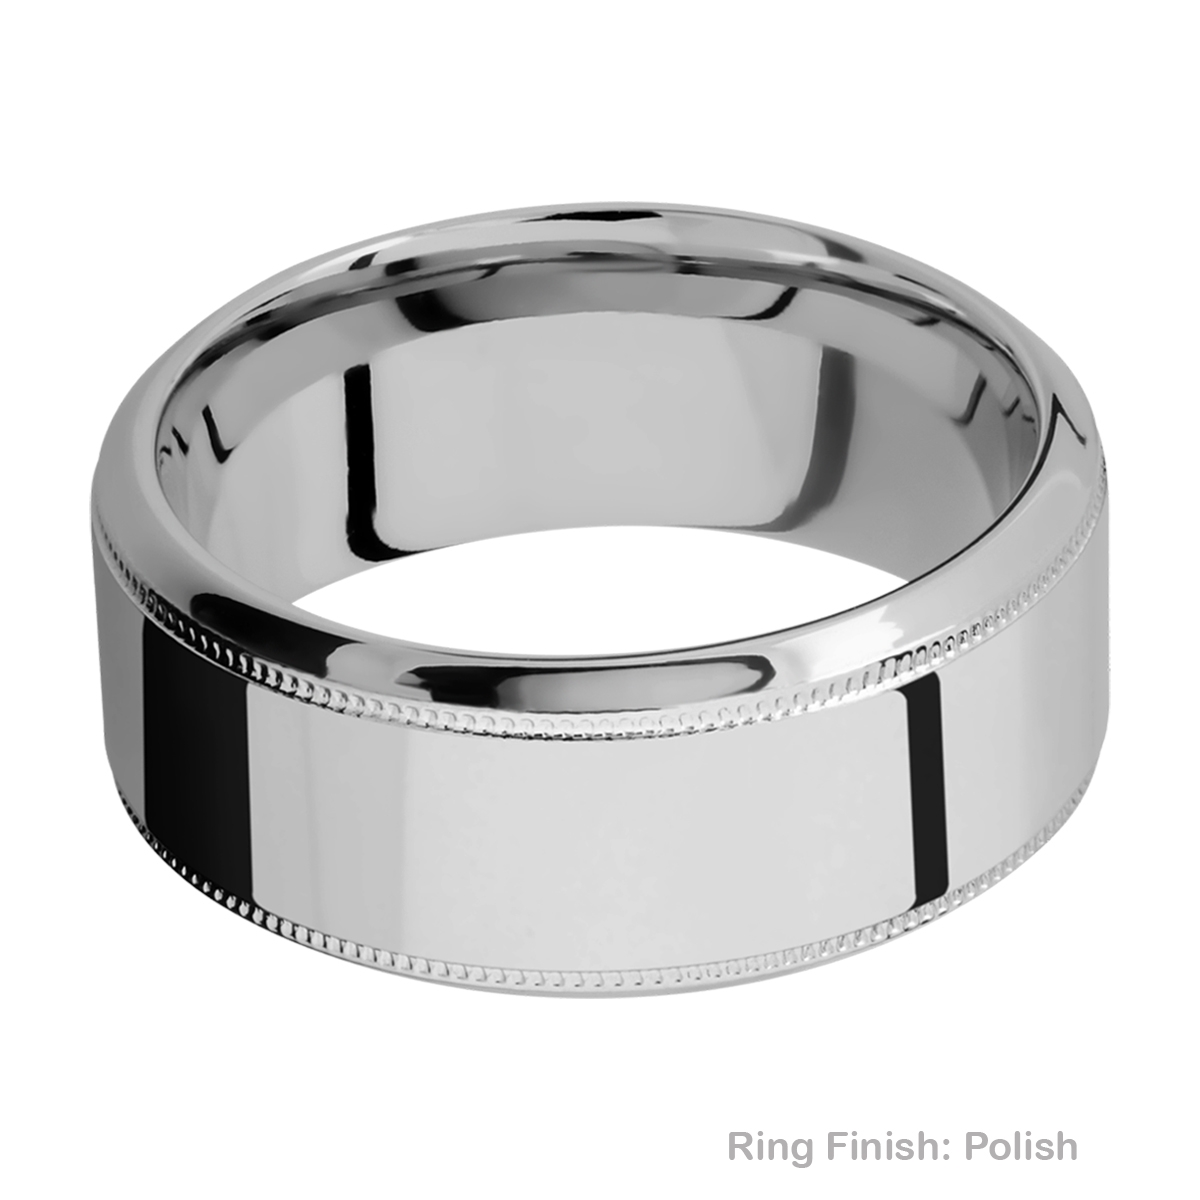 Lashbrook 9HB2UMIL Titanium Wedding Ring or Band Alternative View 4